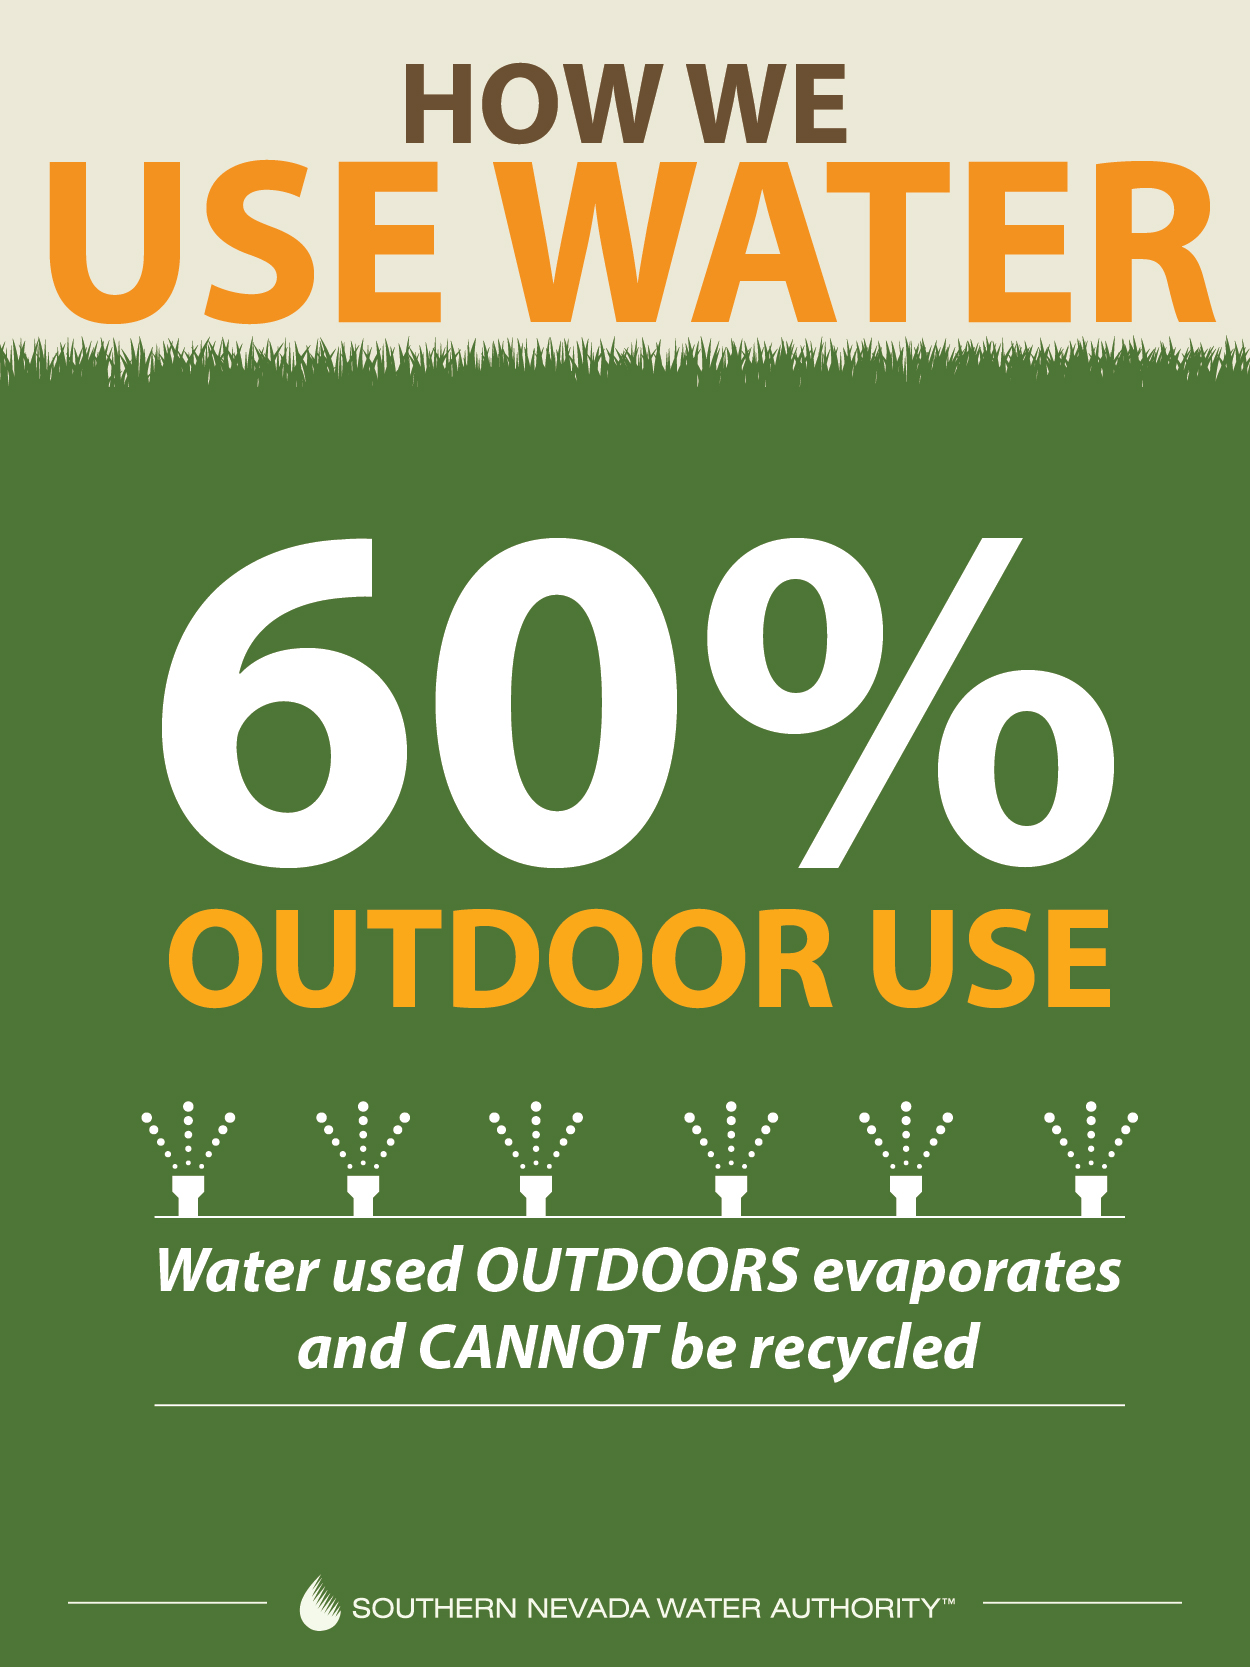 A graphic explaining that 60 percent of water use is outdoors